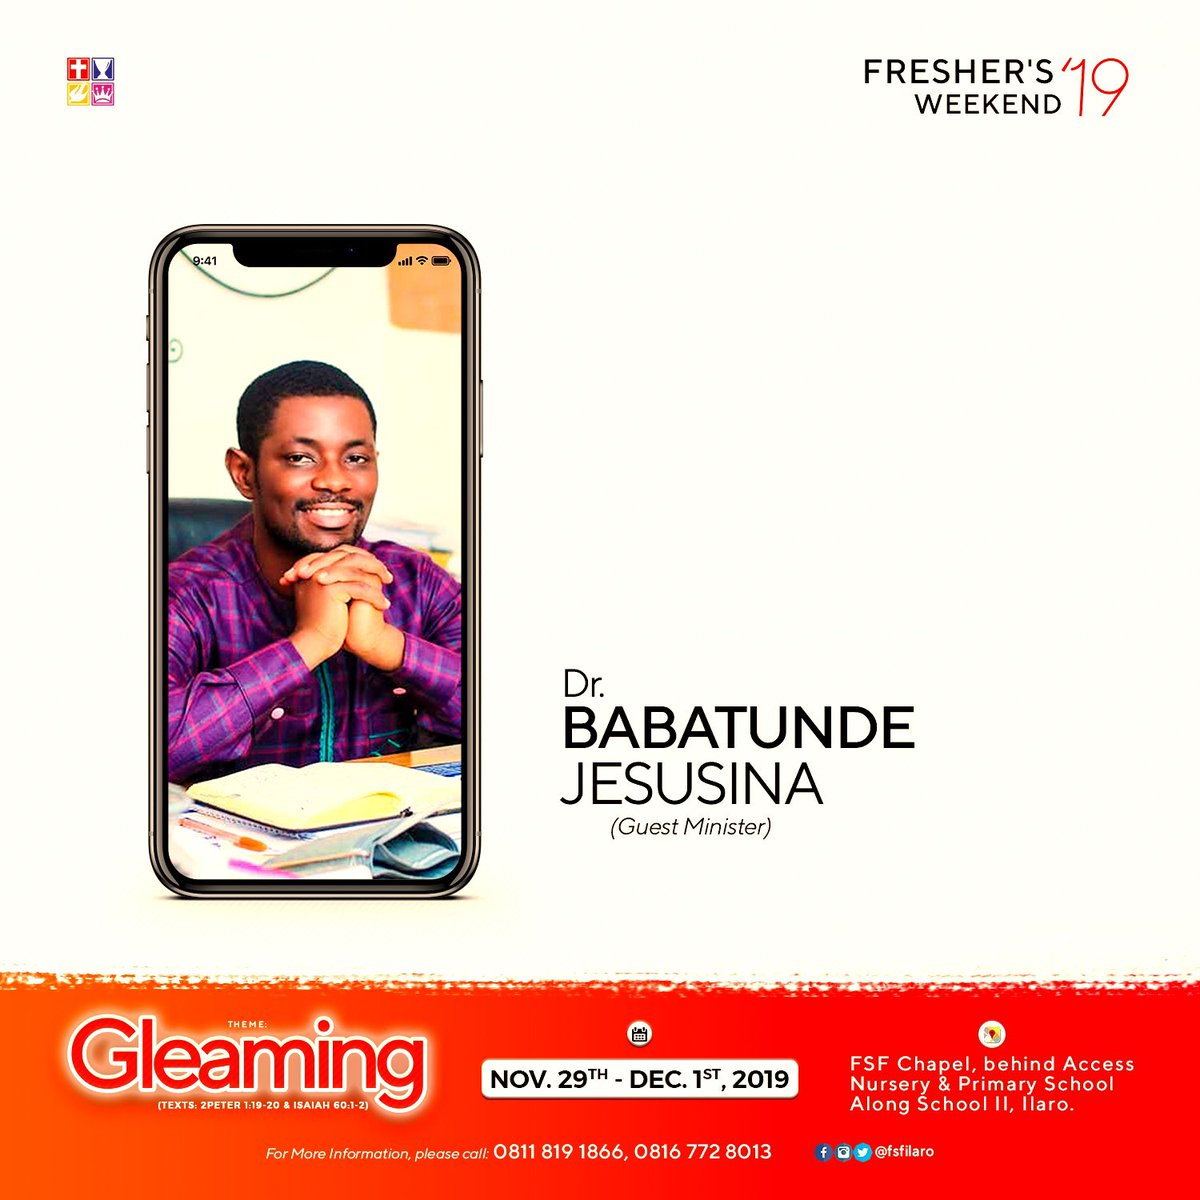 Presenting to you our Guest Minister for our forthcoming Fresher's Weekend 2019.   Dr. BABATUNDE JESUSINA   #freshersweek2019 #fsfilaro #theilluminatorsgeneration